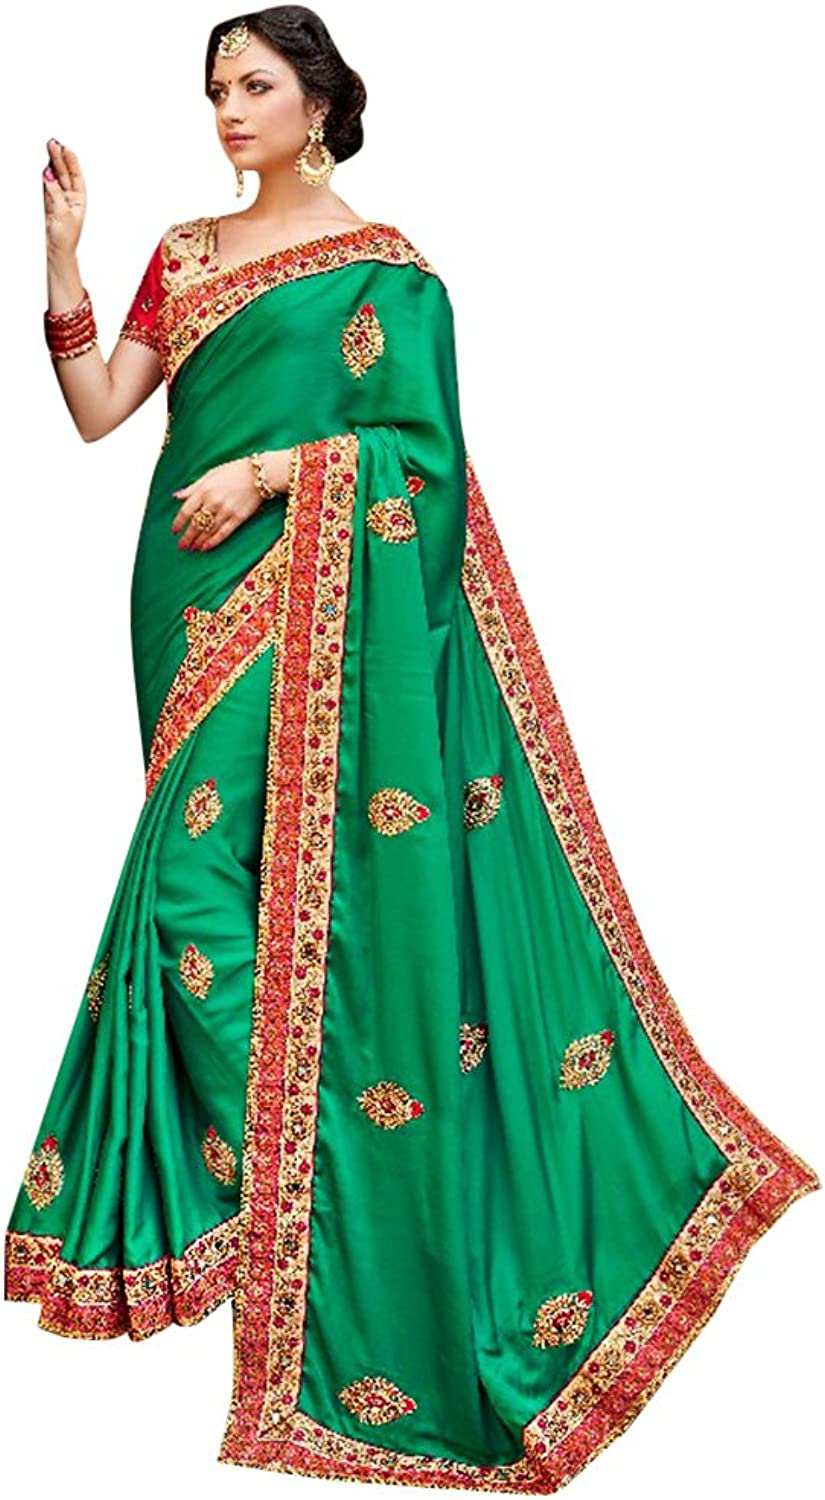 Bridal Ethnic Bollywood Collection Saree Sari Ceremony Bridal Wedding 760 6